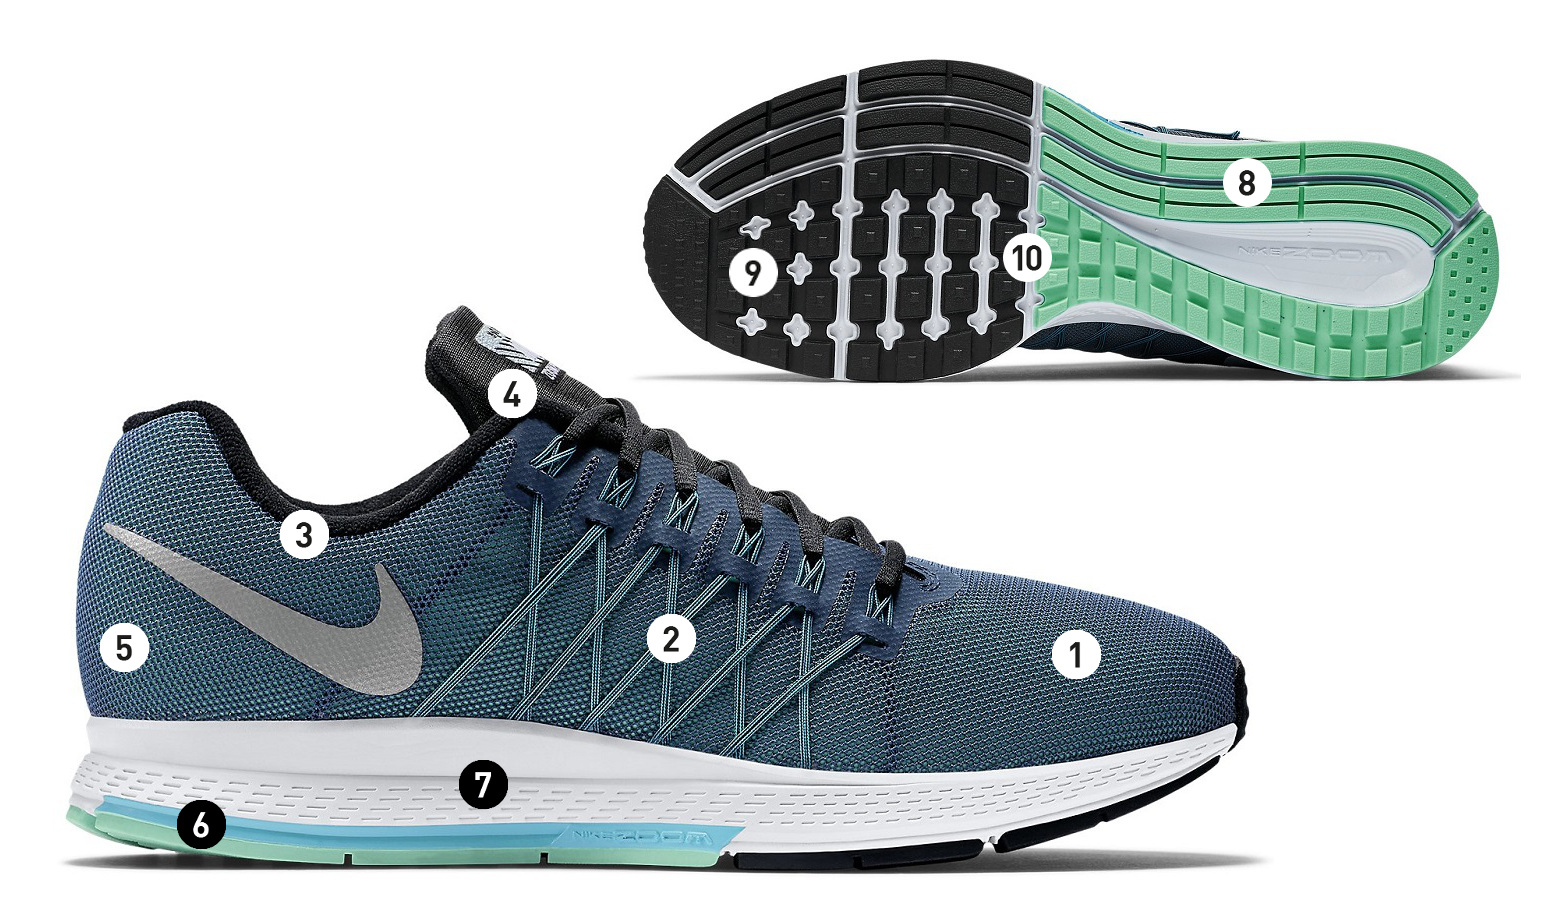 official photos ccdc3 99021 promo code for chaussures de running femme nike air zoom pegasus 32 flash  noir alltricks.